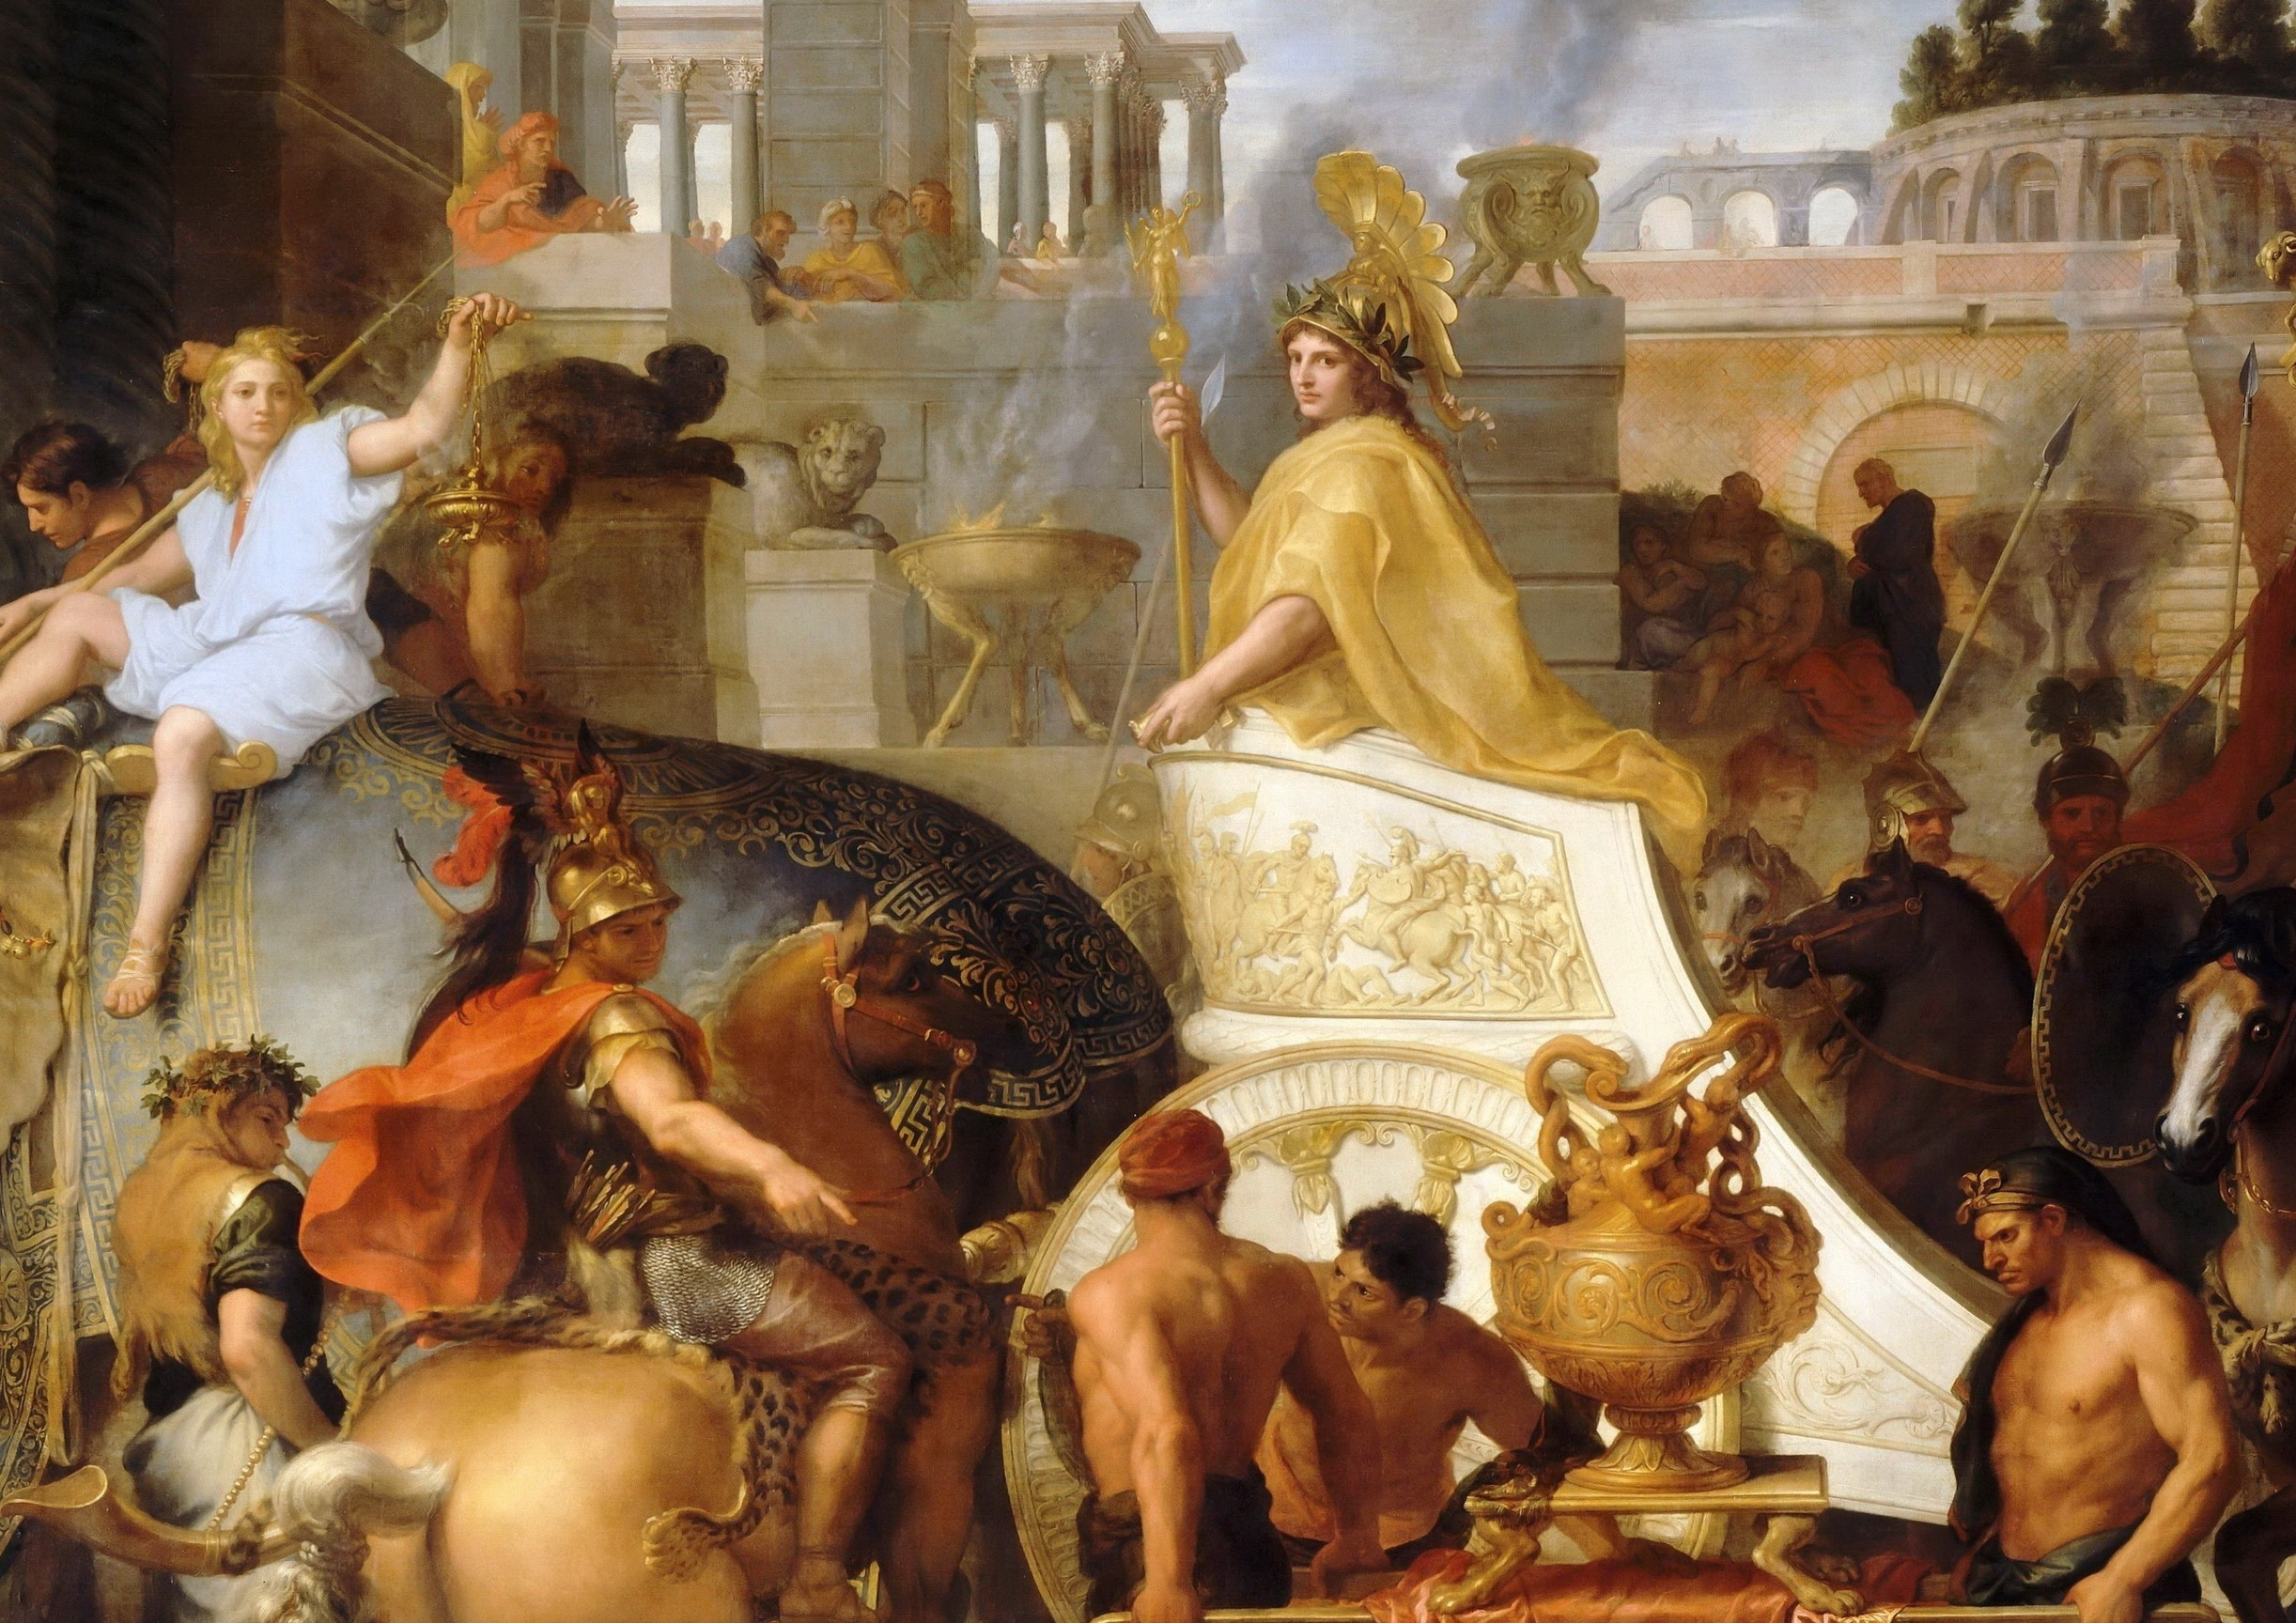 Charles_Le_Brun_-_Entry_of_Alexander_into_Babylon